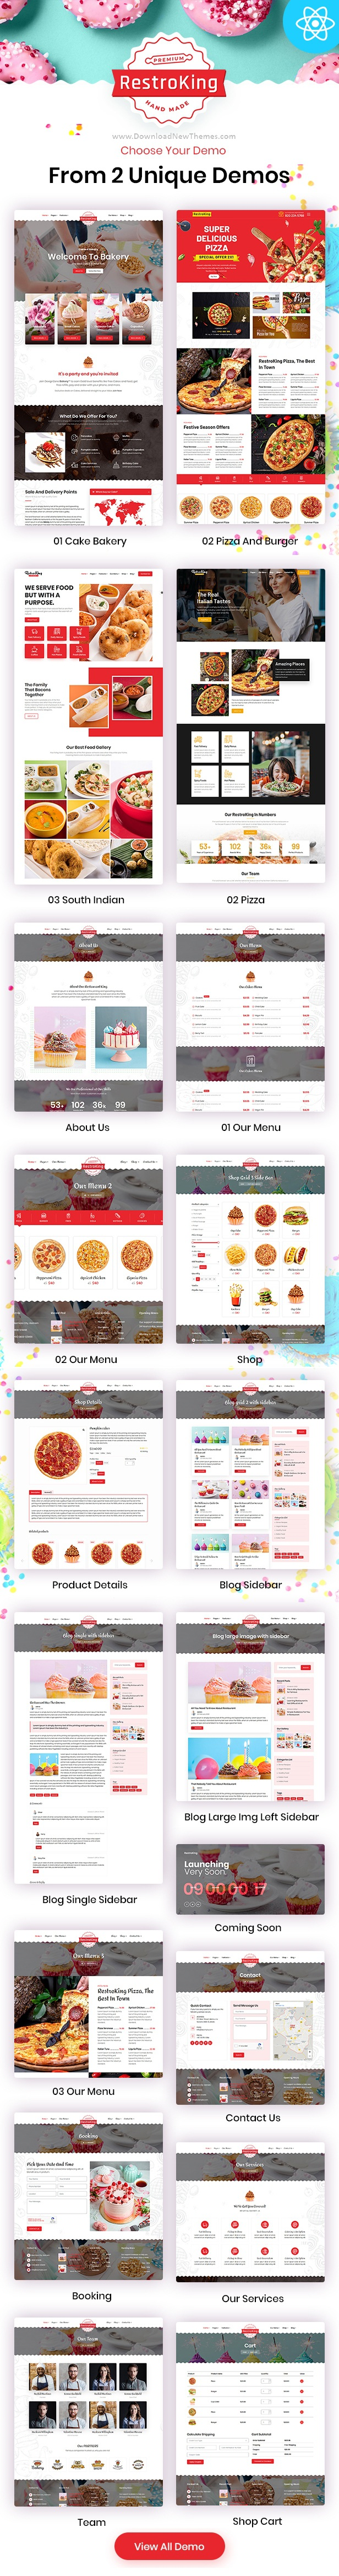 Cake Pizza and Bakery Bootstrap Template